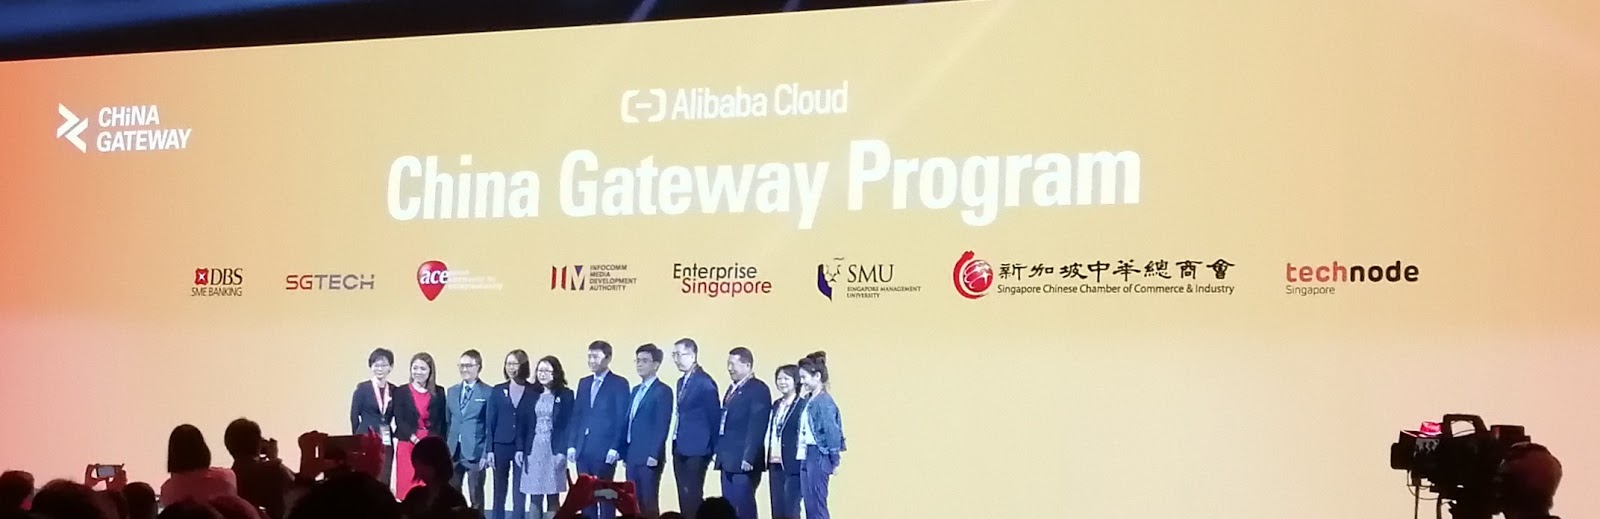 WorkSmart Asia: Alibaba Cloud to help companies fast-track